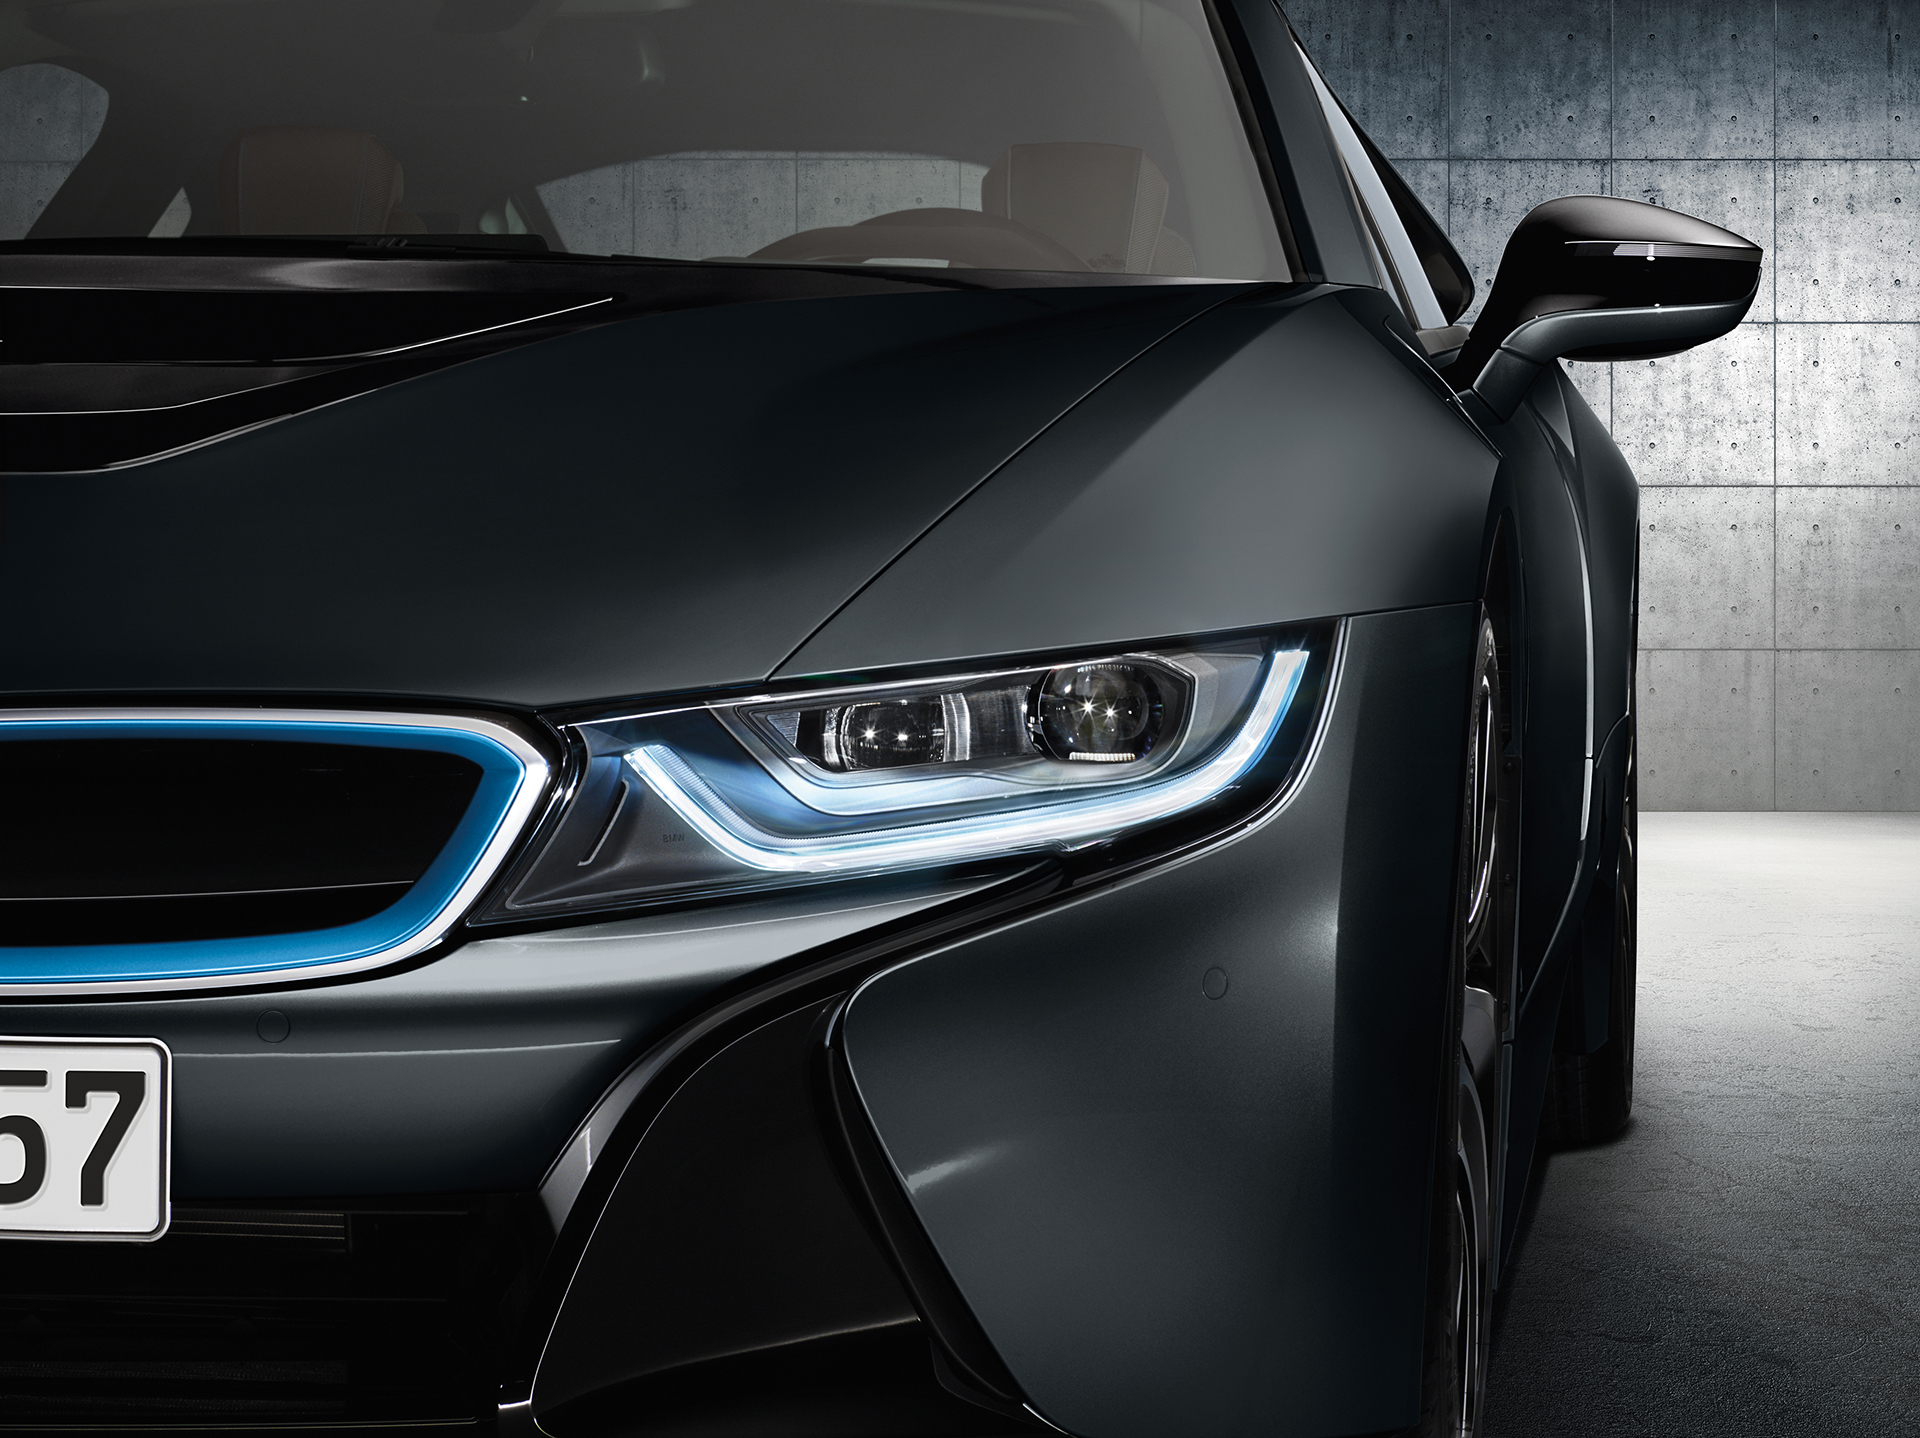 BMW i8 - front light / optique avant